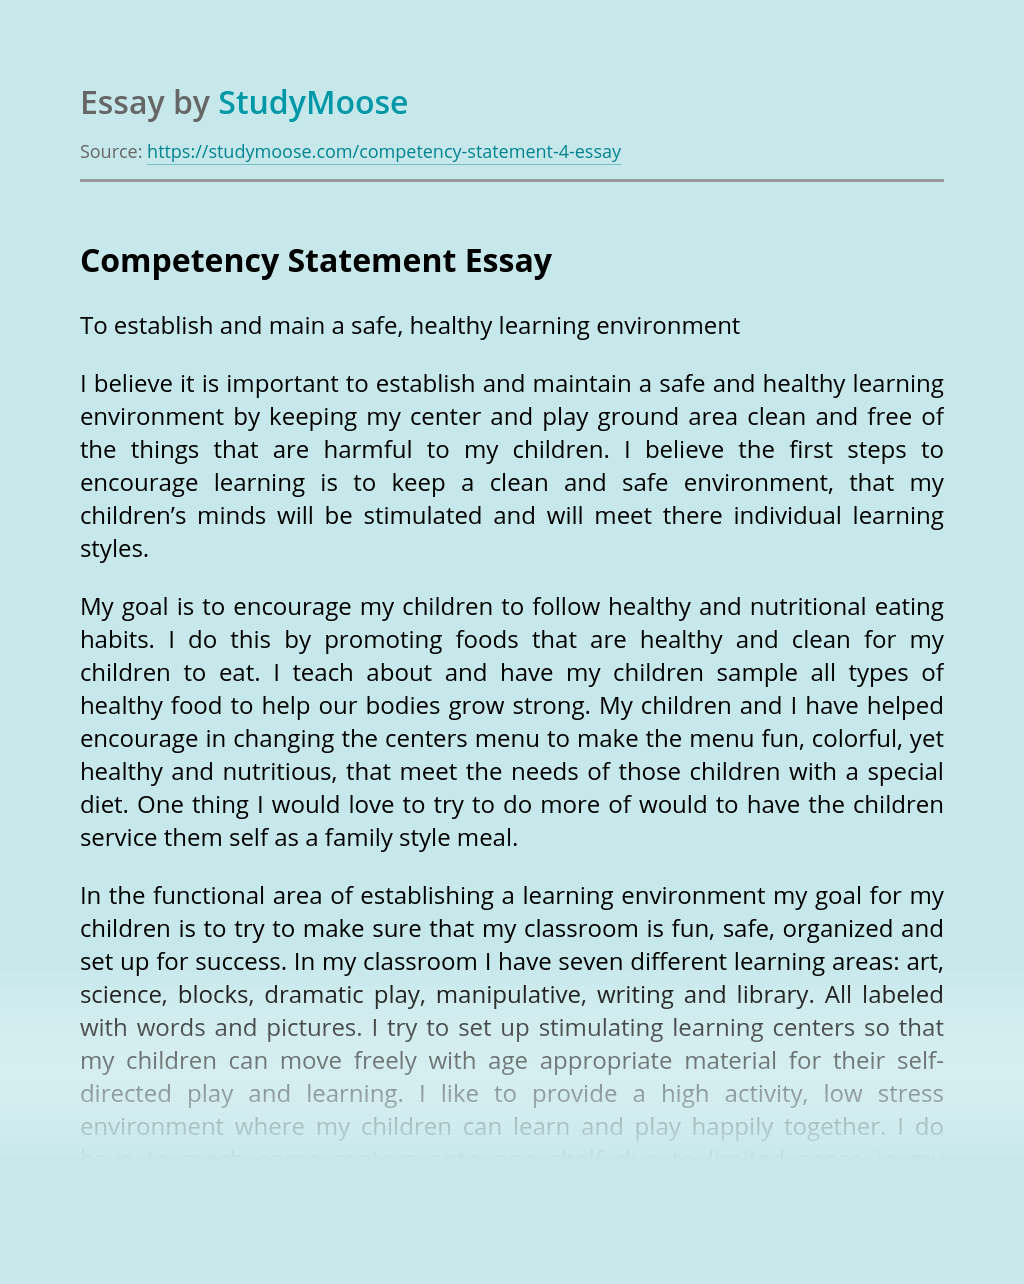 Competency Statement